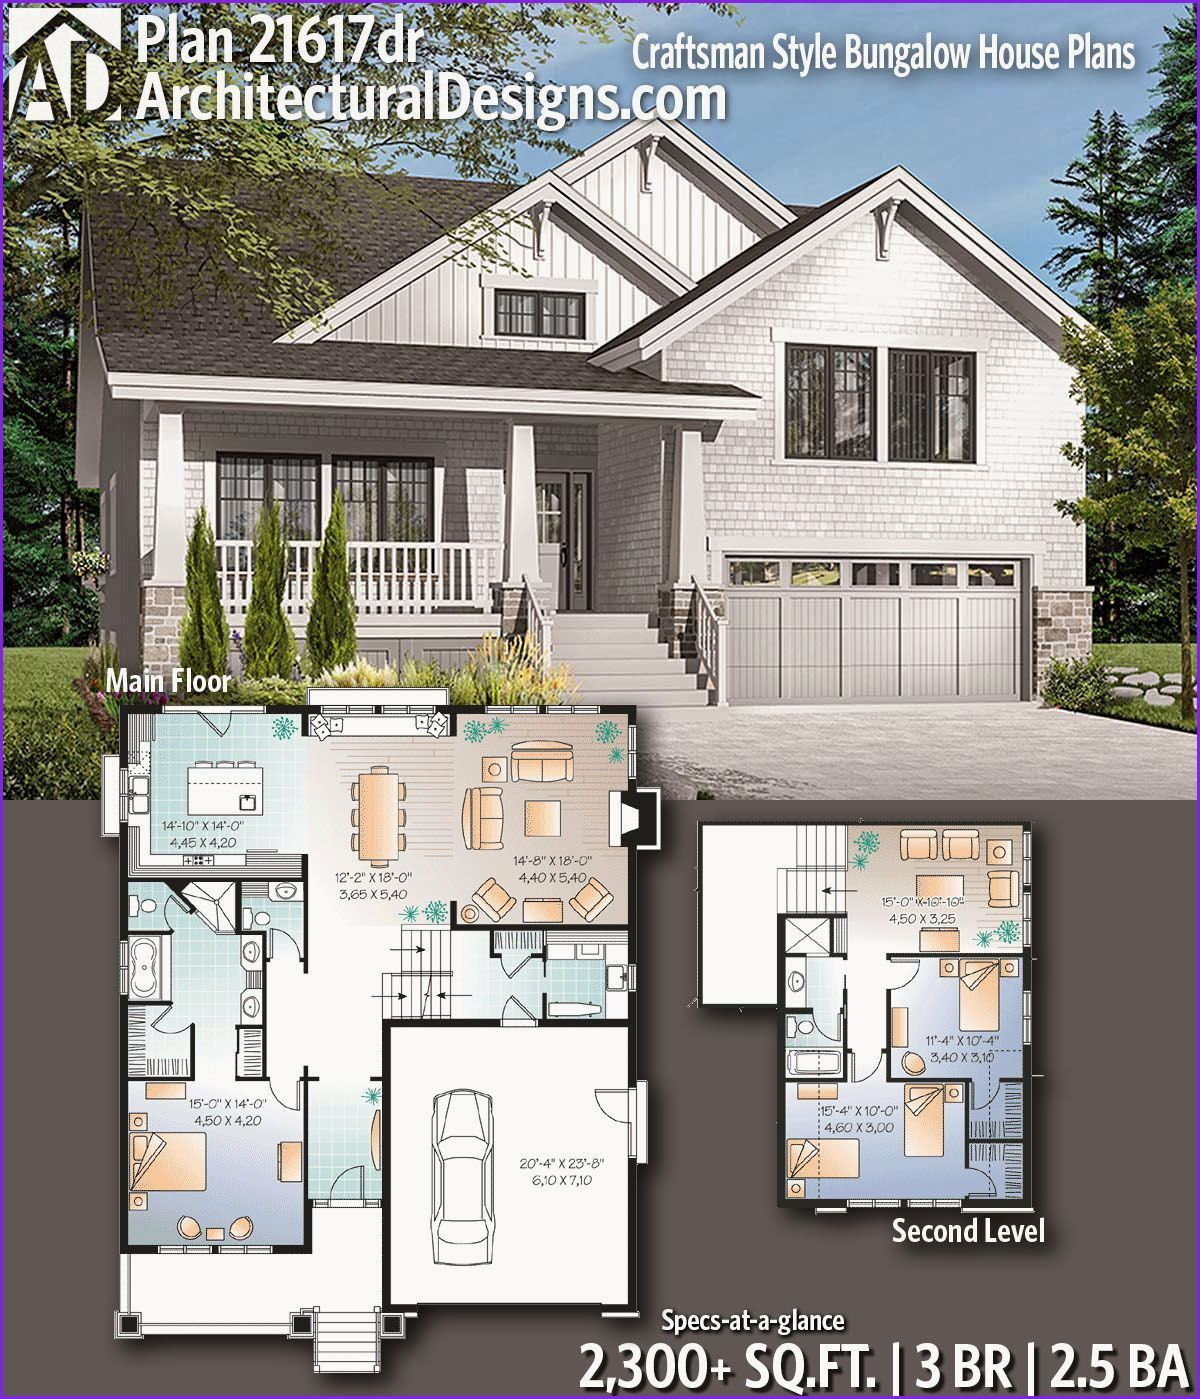 Awesome 4 Bedroom Bungalow House Plans Craftsman House Plans Craftsman House Designs Craftsman Style Bungalow